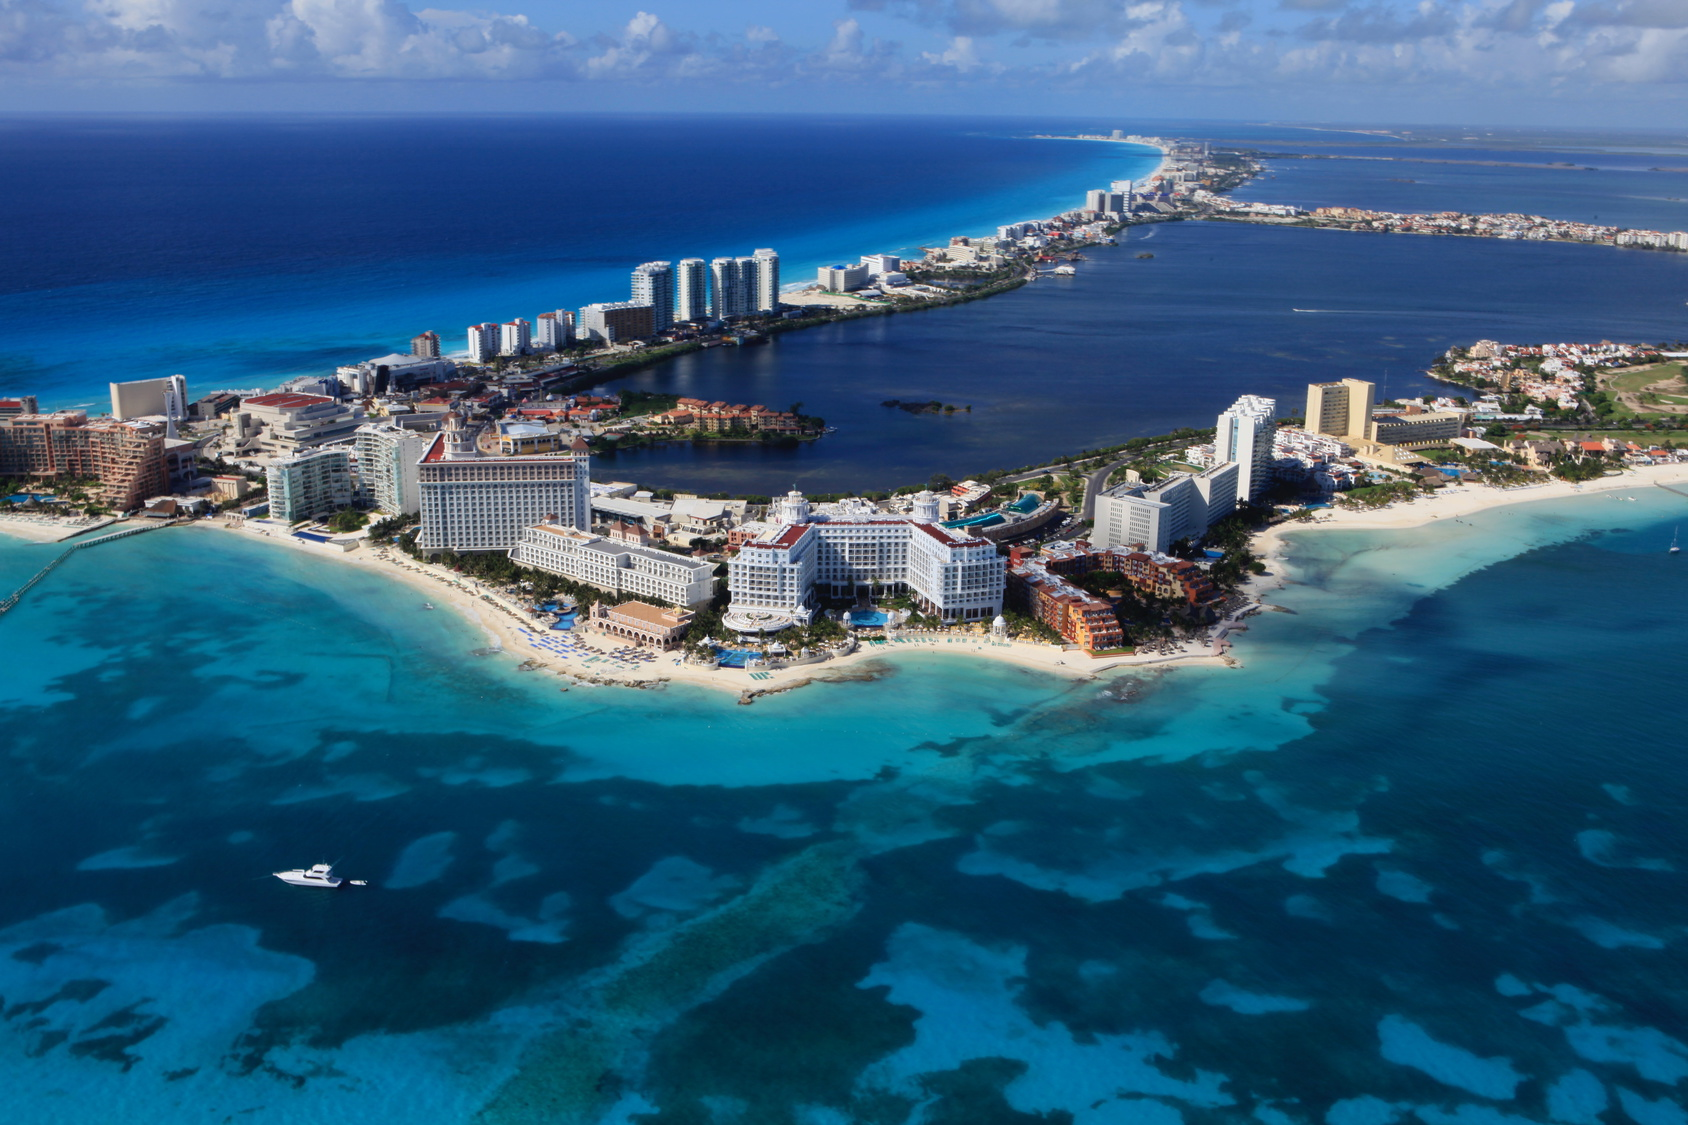 Mexico_Cancun_A(Fotolia)_127862571.jpg